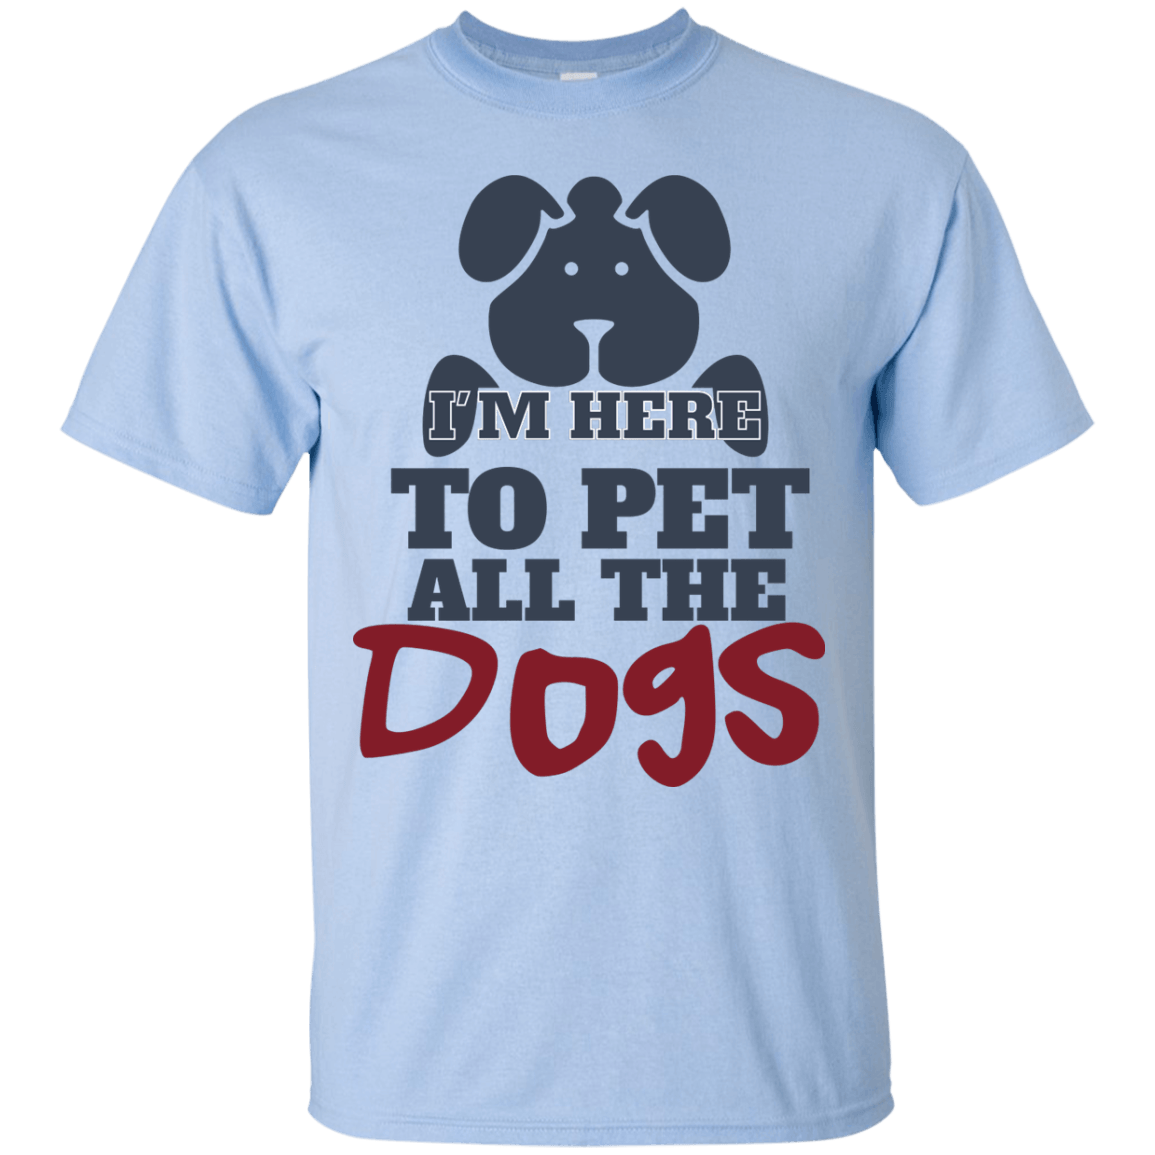 Pet All The Dogs themed T-Shirts and Hoodies for Men and Women